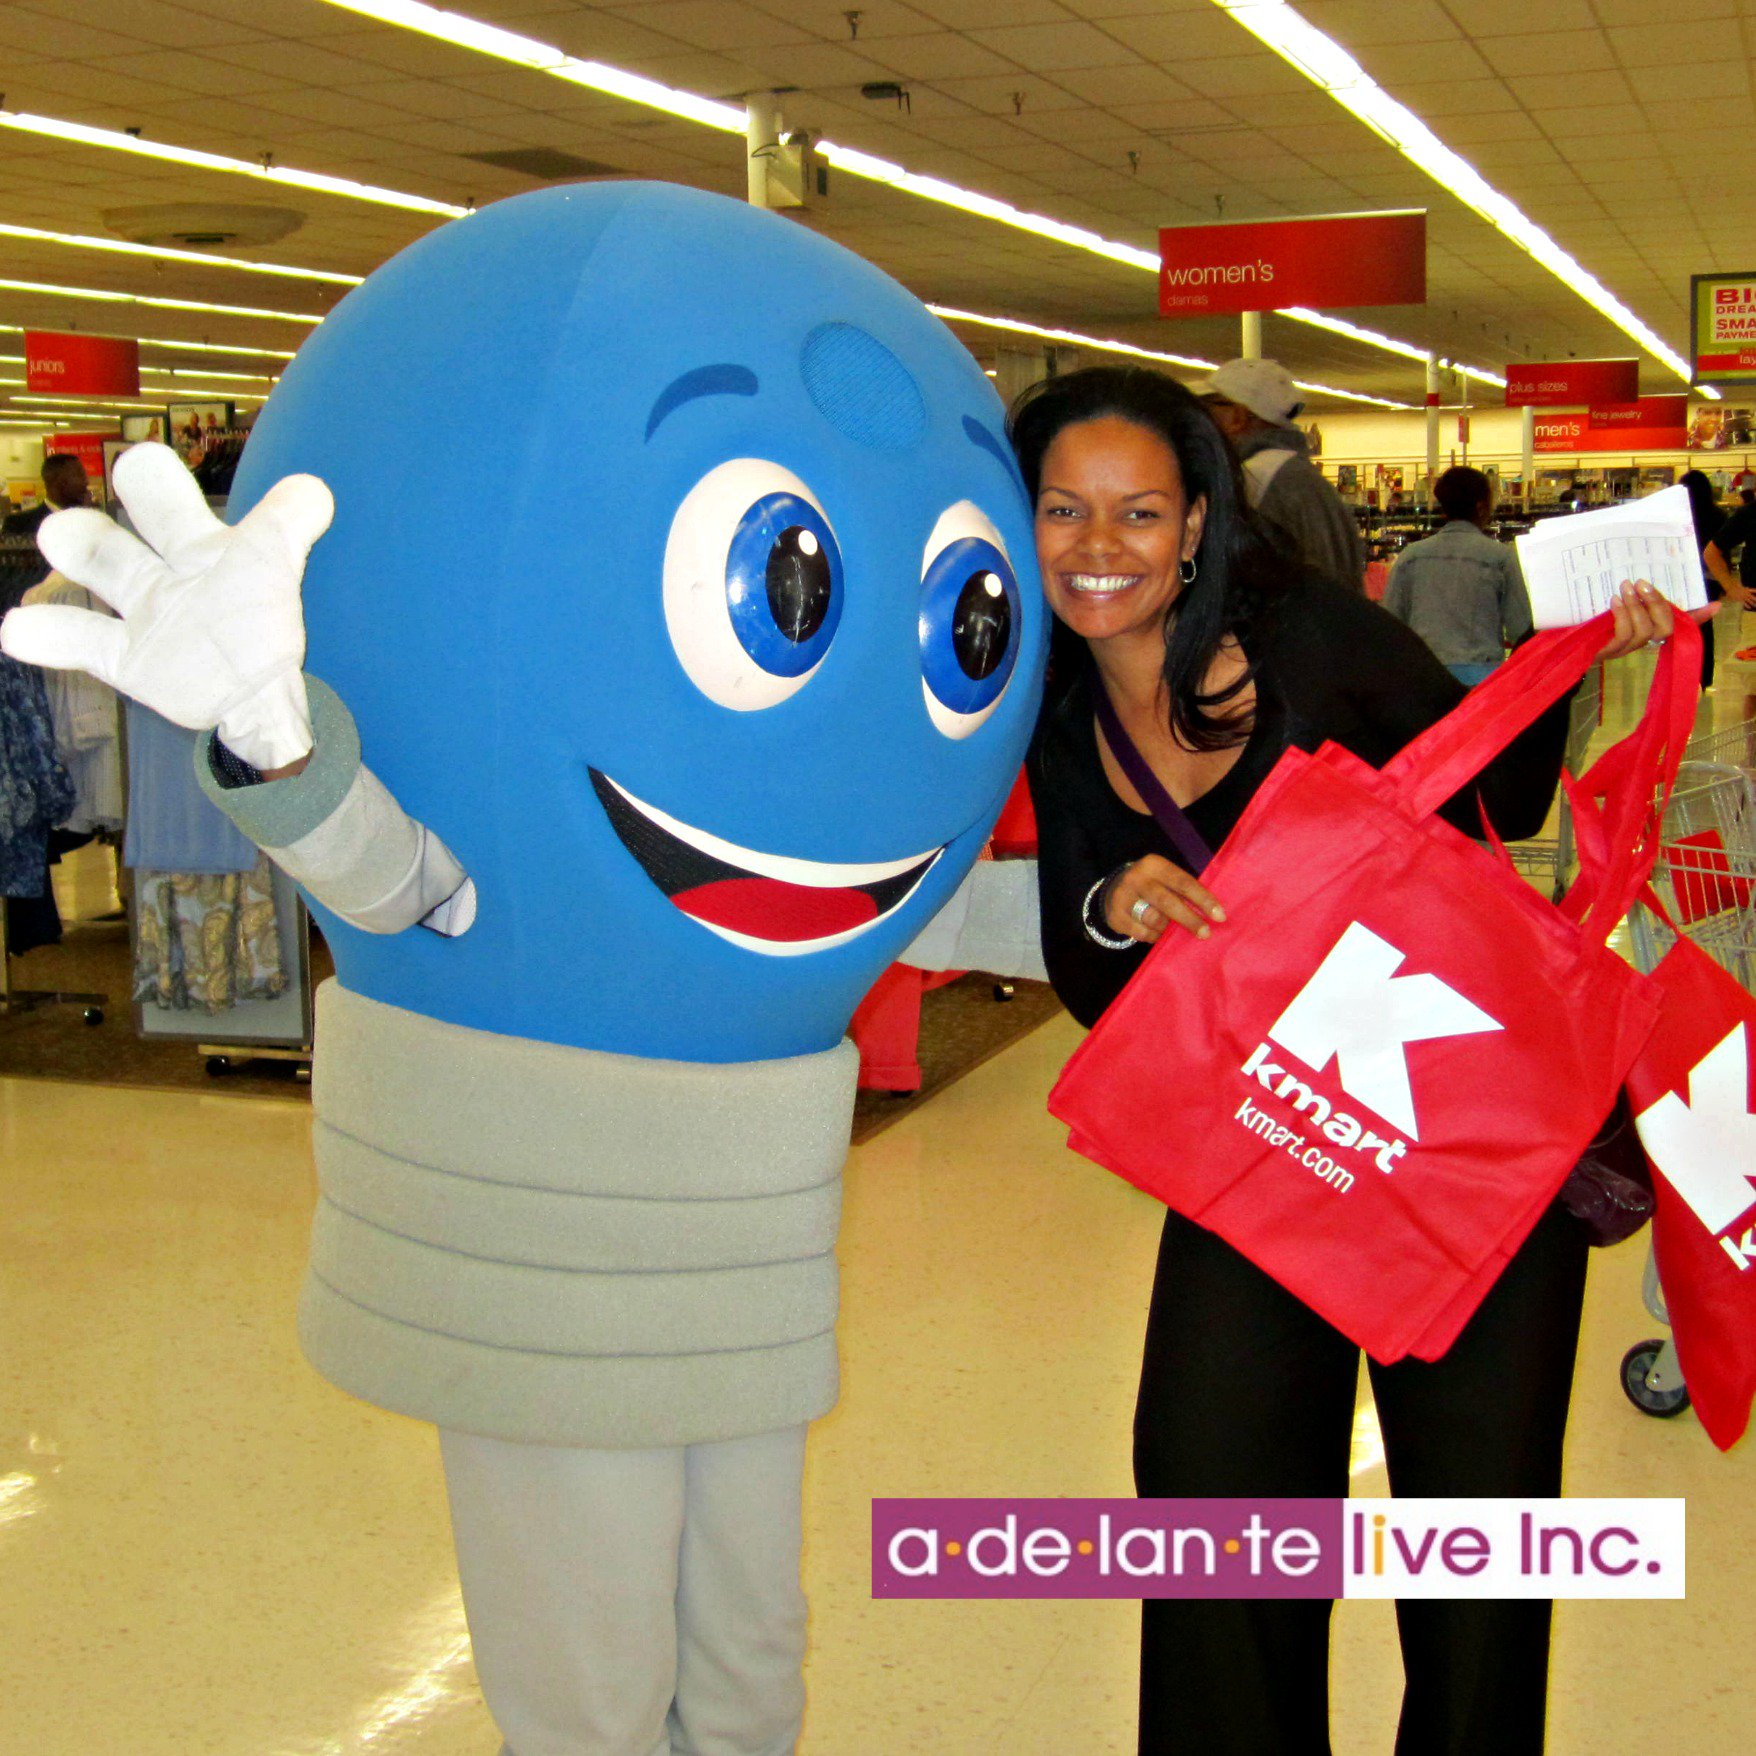 Adelante Live Promos On Twitter We Could All Use A Friendly Face On Humpday Waybackwednesday Mrbluelight Mascot Smile Promomodels Kmart Fun